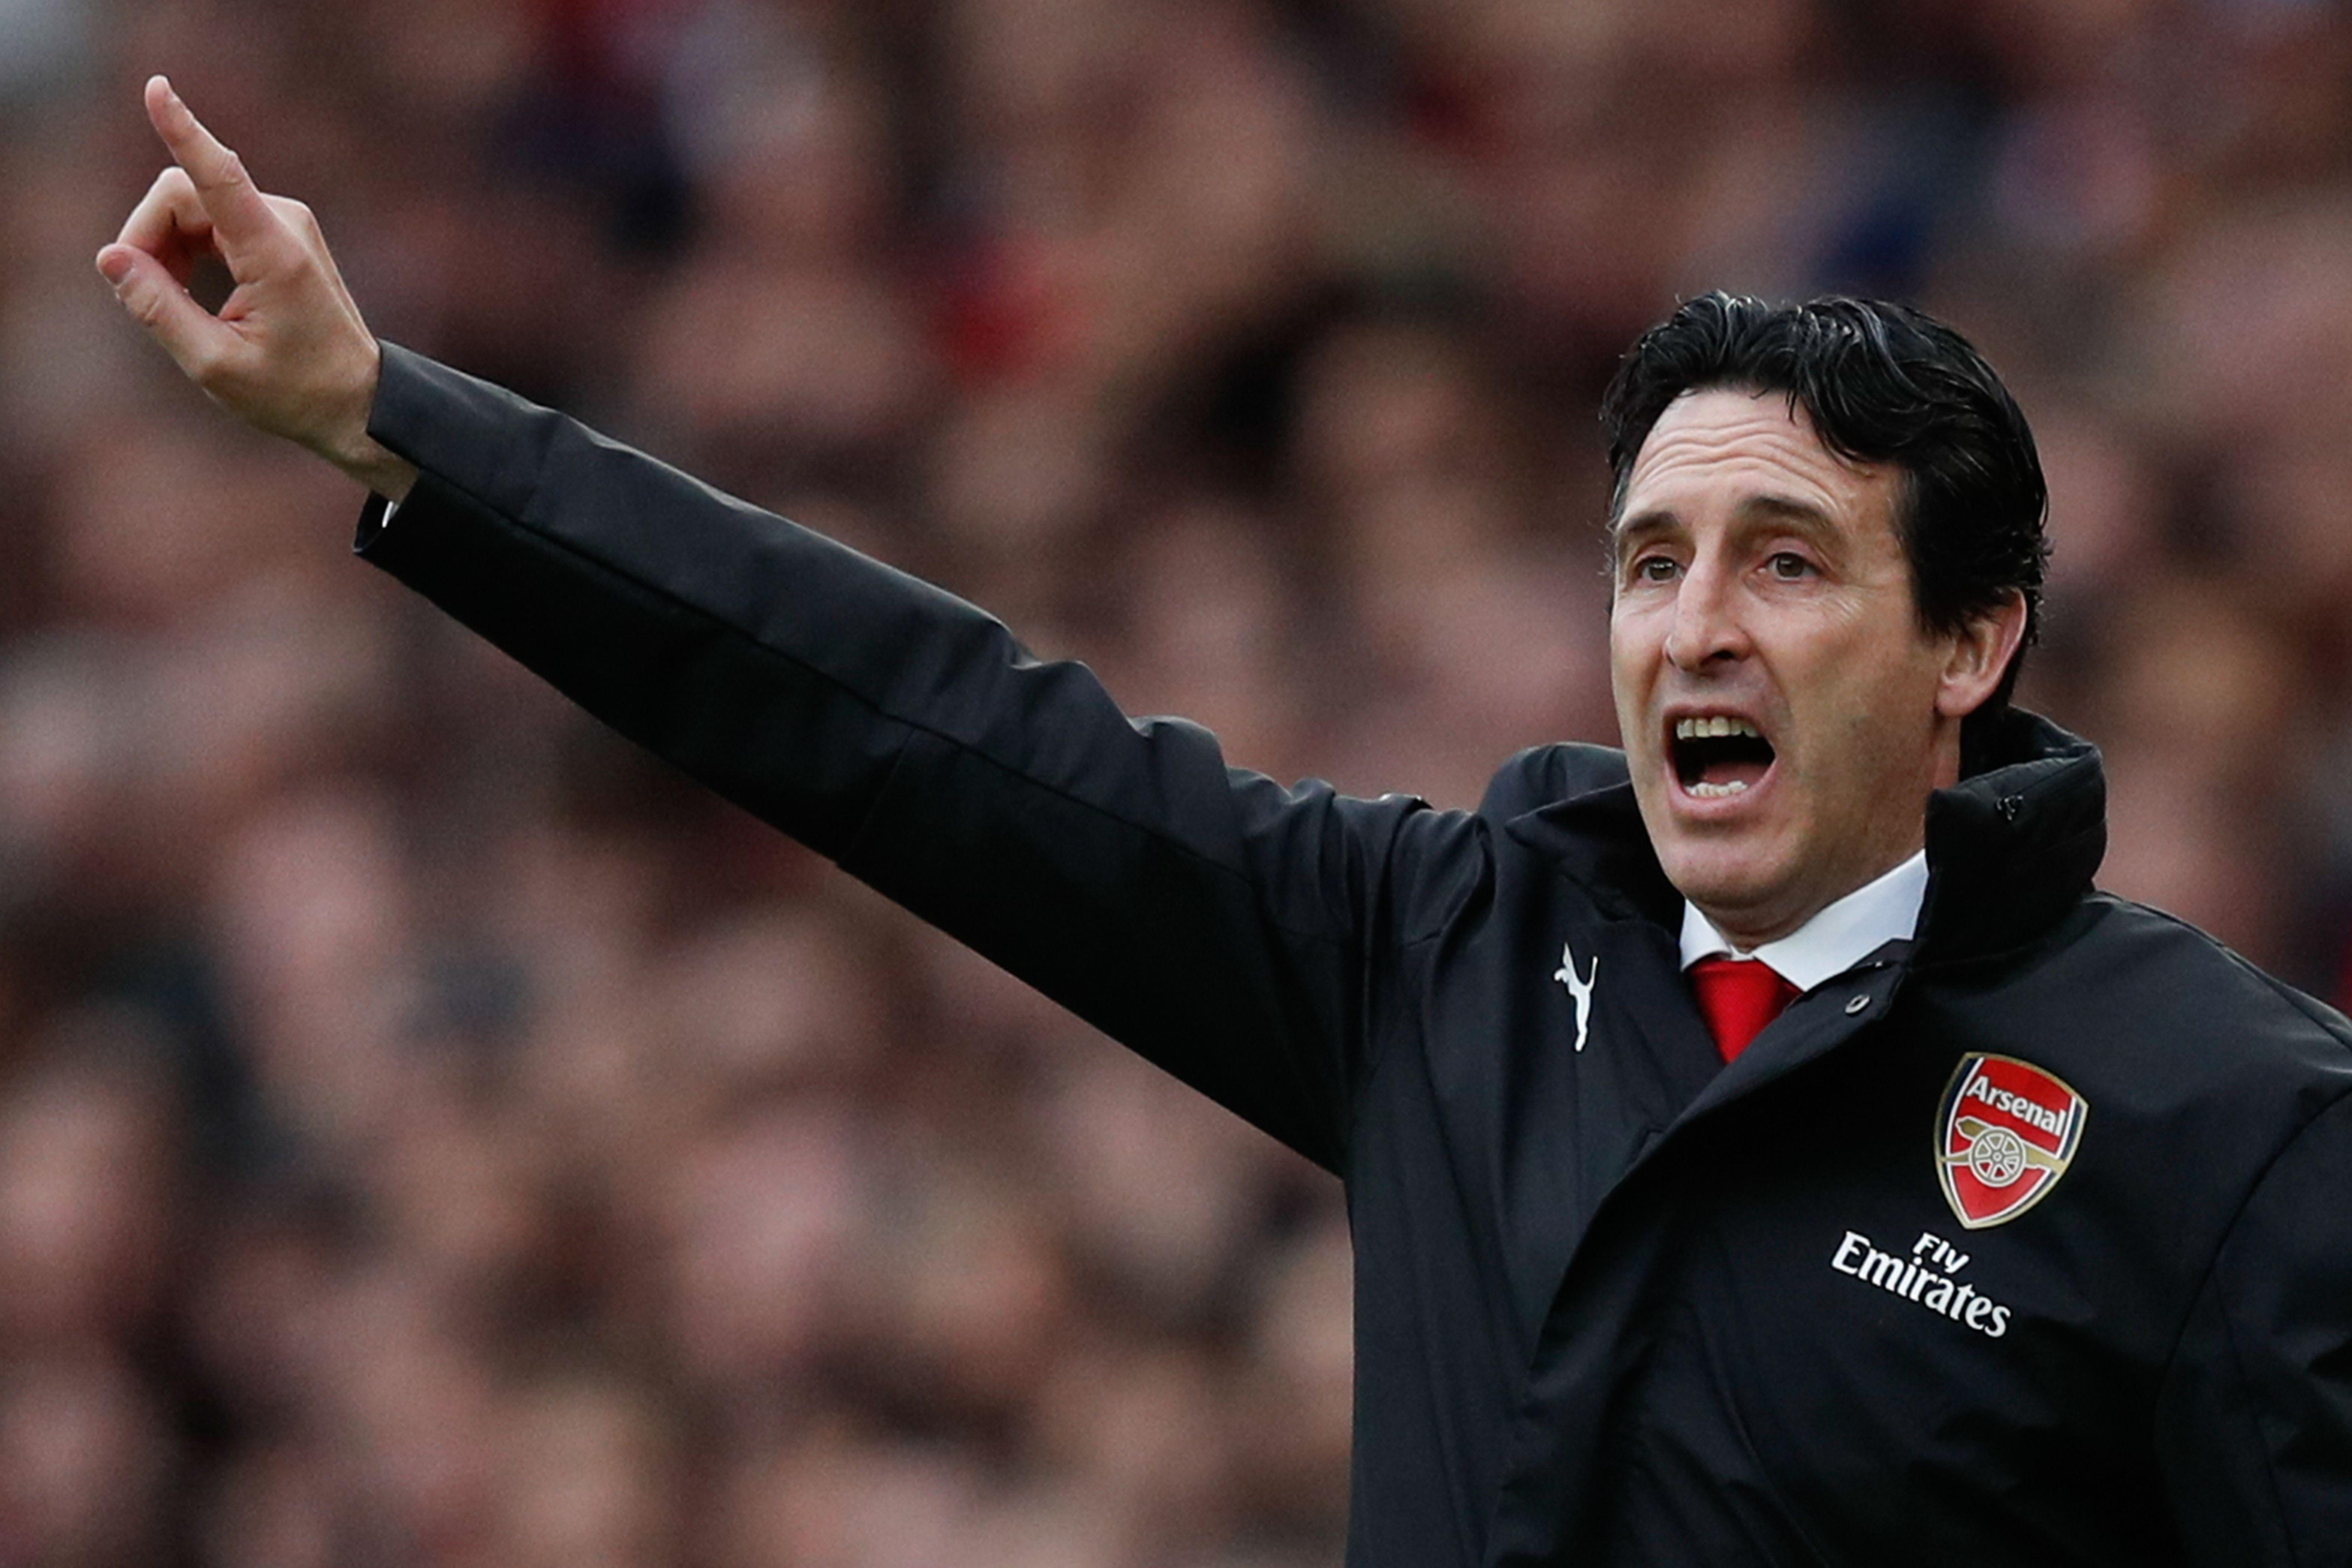 Emery guided Arsenal to a 4-2 win over rivals Tottenham